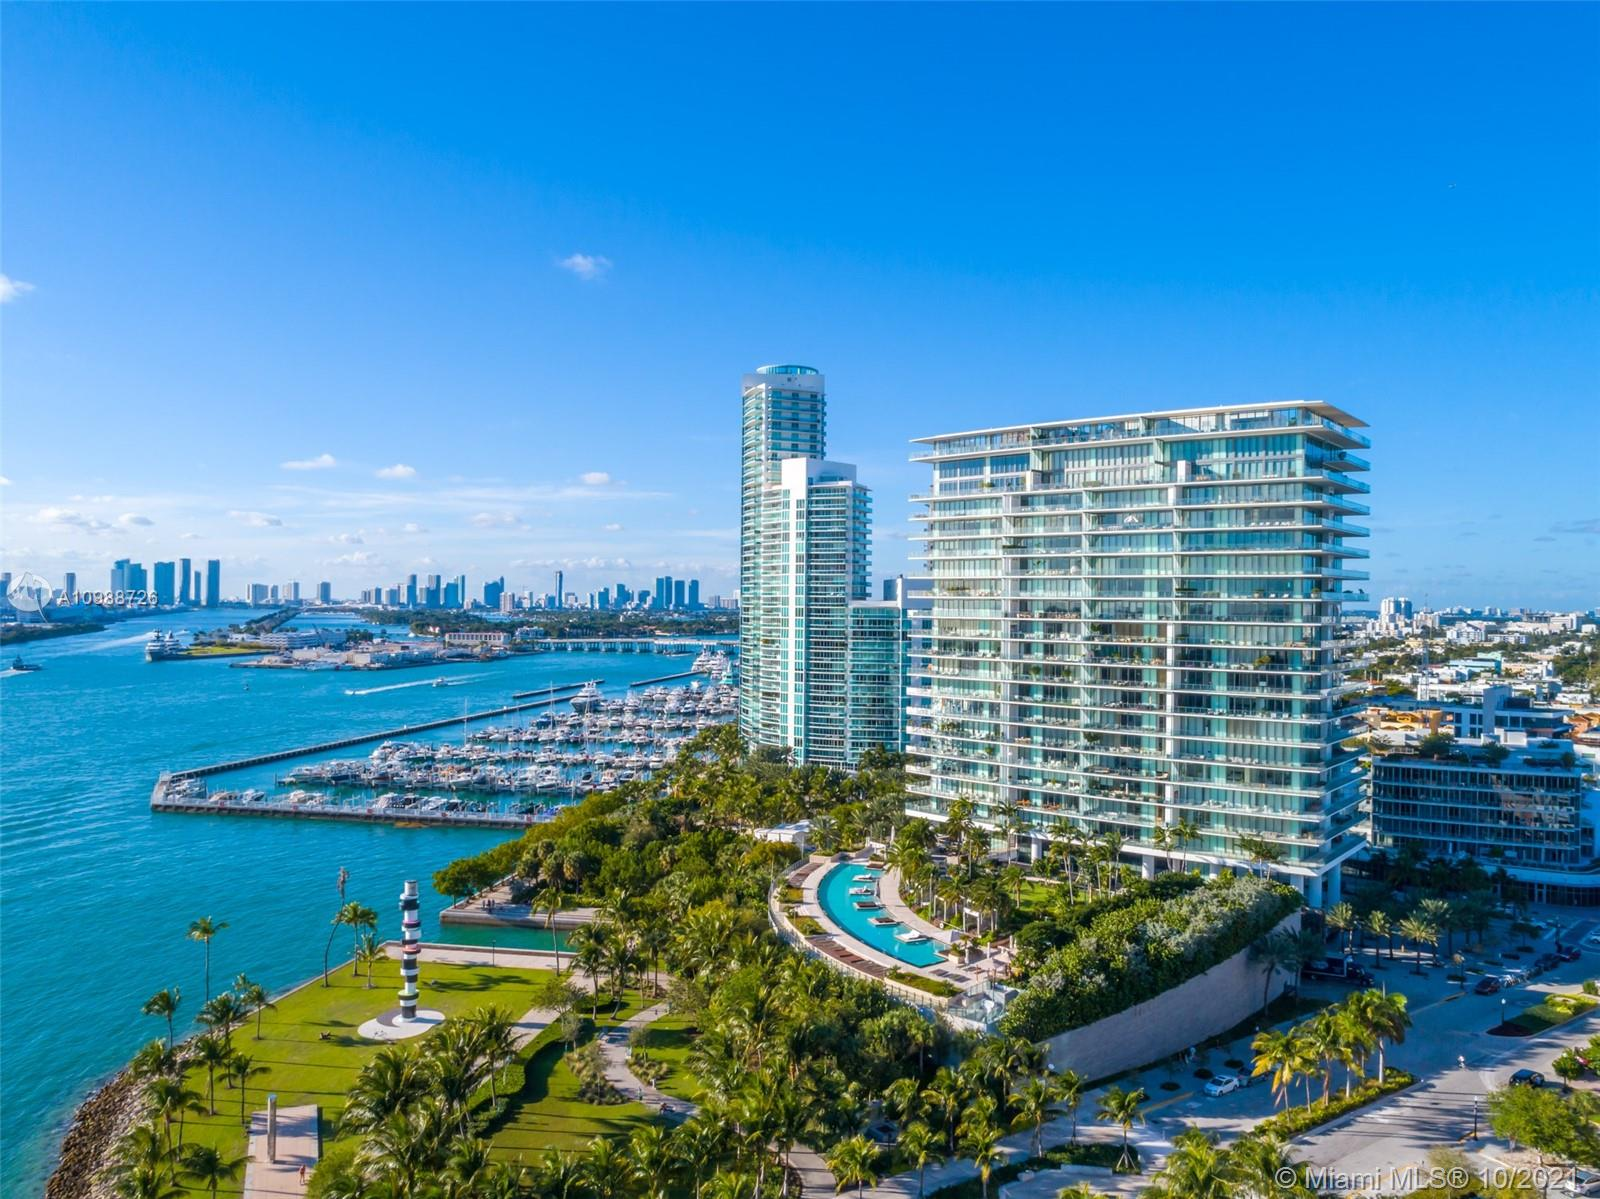 Enjoy stunning panoramic views from this high floor 01 at Apogee.  With 11 ft high ceilings, and an 11 ft deep wraparound terrace lined with floor to ceiling glass, this residence offers the ultimate condo lifestyle in Miami Beach.  Comprised of only 67 residences Apogee is exclusive and private making it the top choice for discerning clientele.  With 4,154 sf of interior and 2,446 of terrace, and a private air conditioned two car garage, 1401 offers a spacious floor plan fitting the needs of full-time residents relocating to Miami or looking for a vacation property. Located on prestigious South Pointe Drive in the most pedestrian friendly neighborhood in town adjacent to South Pointe park and surrounded by the area's best restaurants and entertaining and beach.